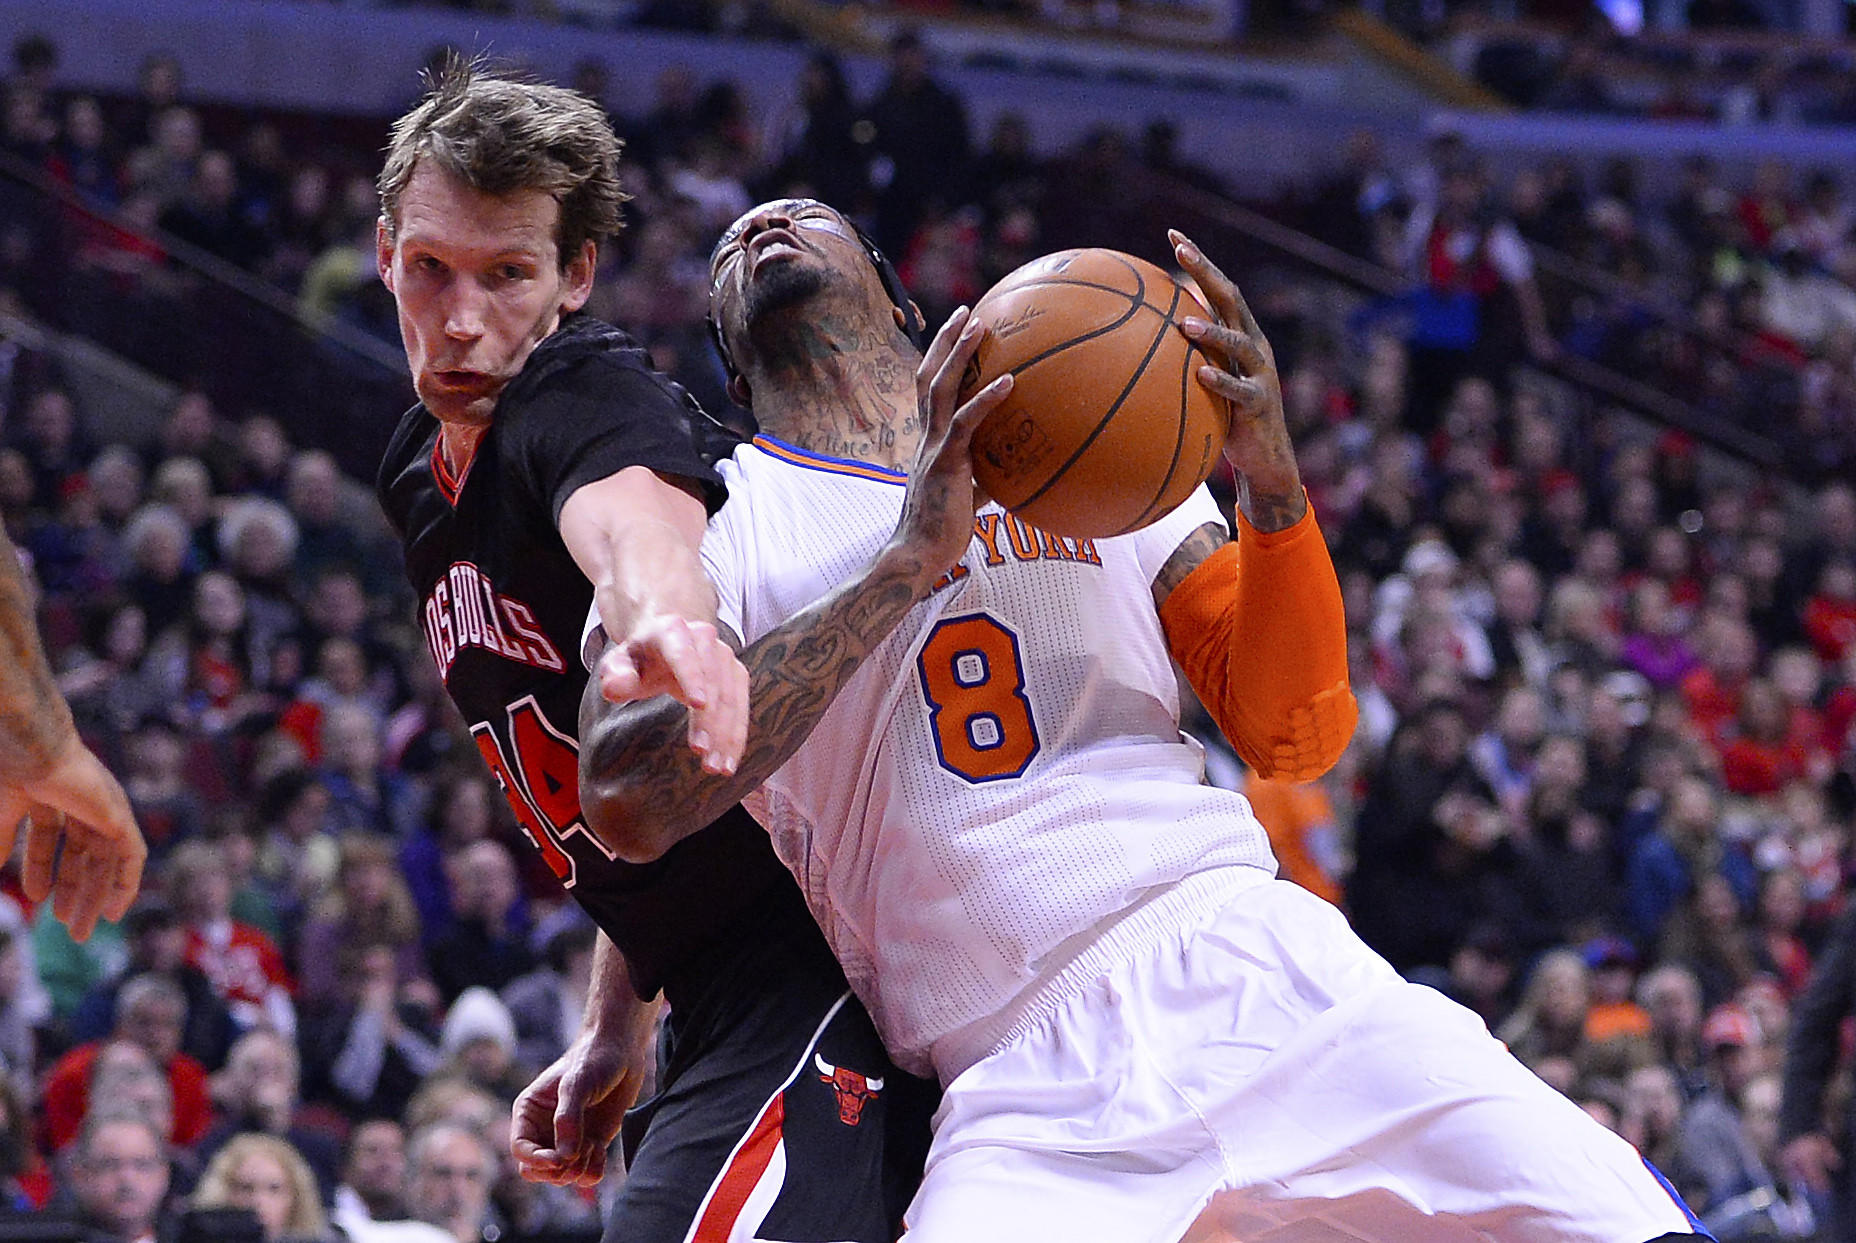 Mike Dunleavy fouls the Knicks' J.R. Smith during the first half at the United Center.